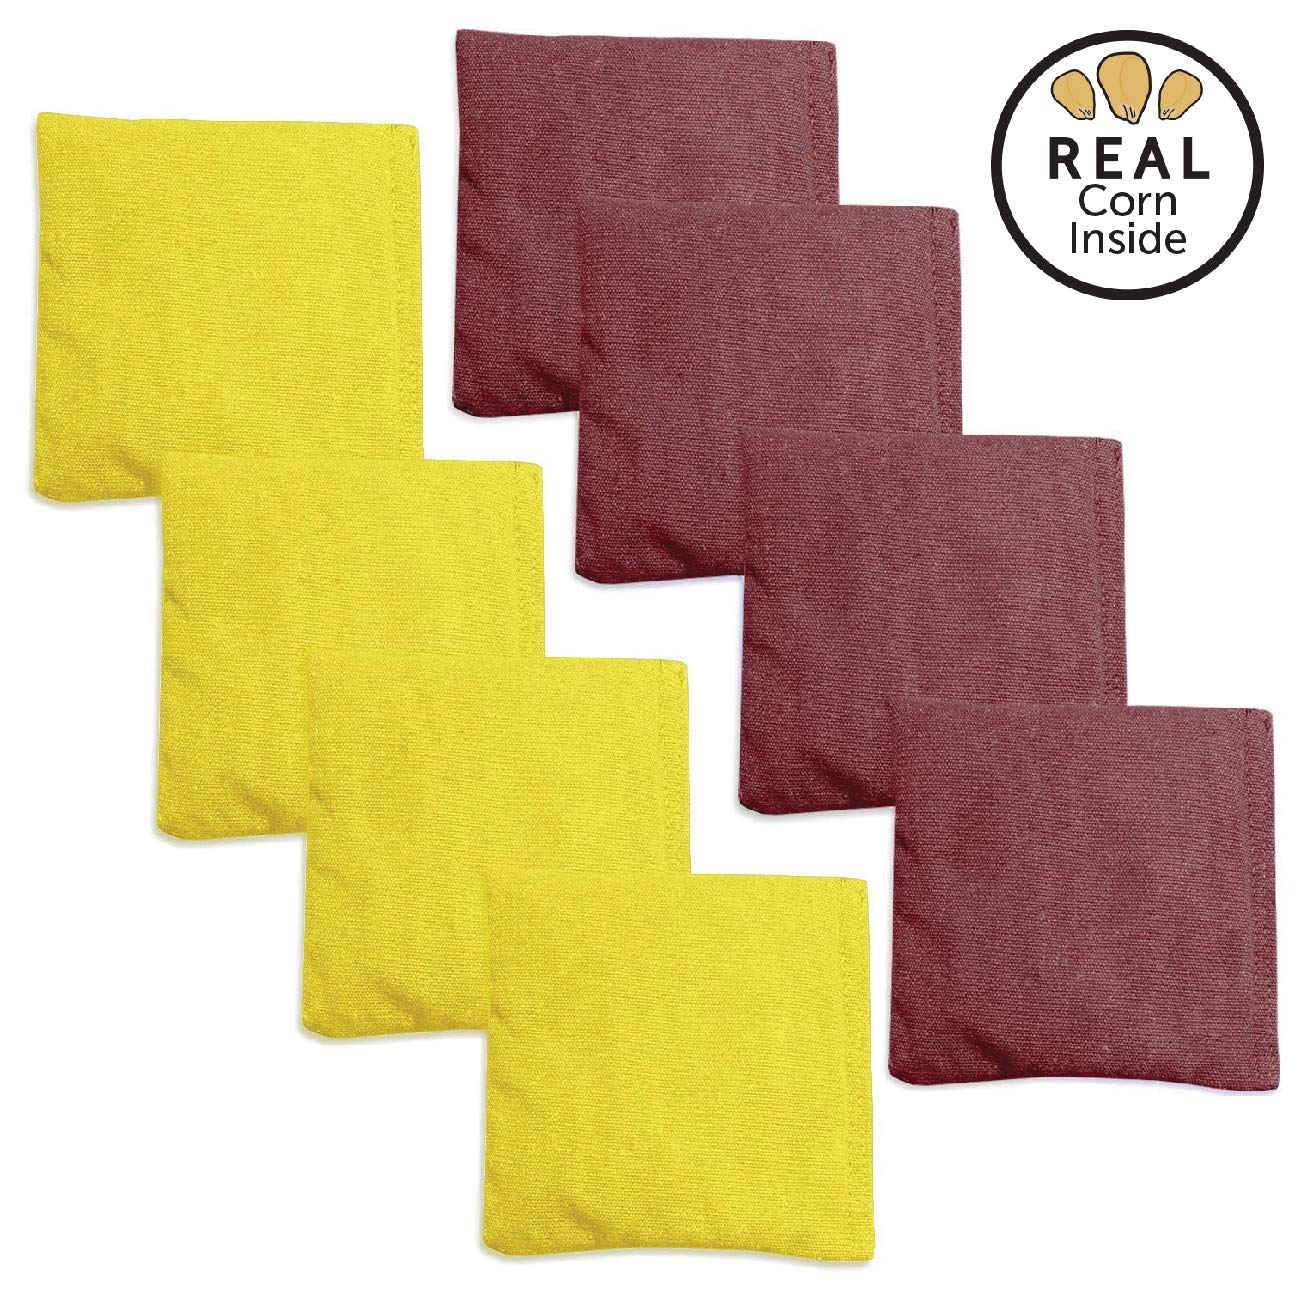 Corn Filled Cornhole Bags - Set of 8 Bean Bags for Corn Hole Game - Regulation Size & Weight - Burgundy & Yellow by Play Platoon